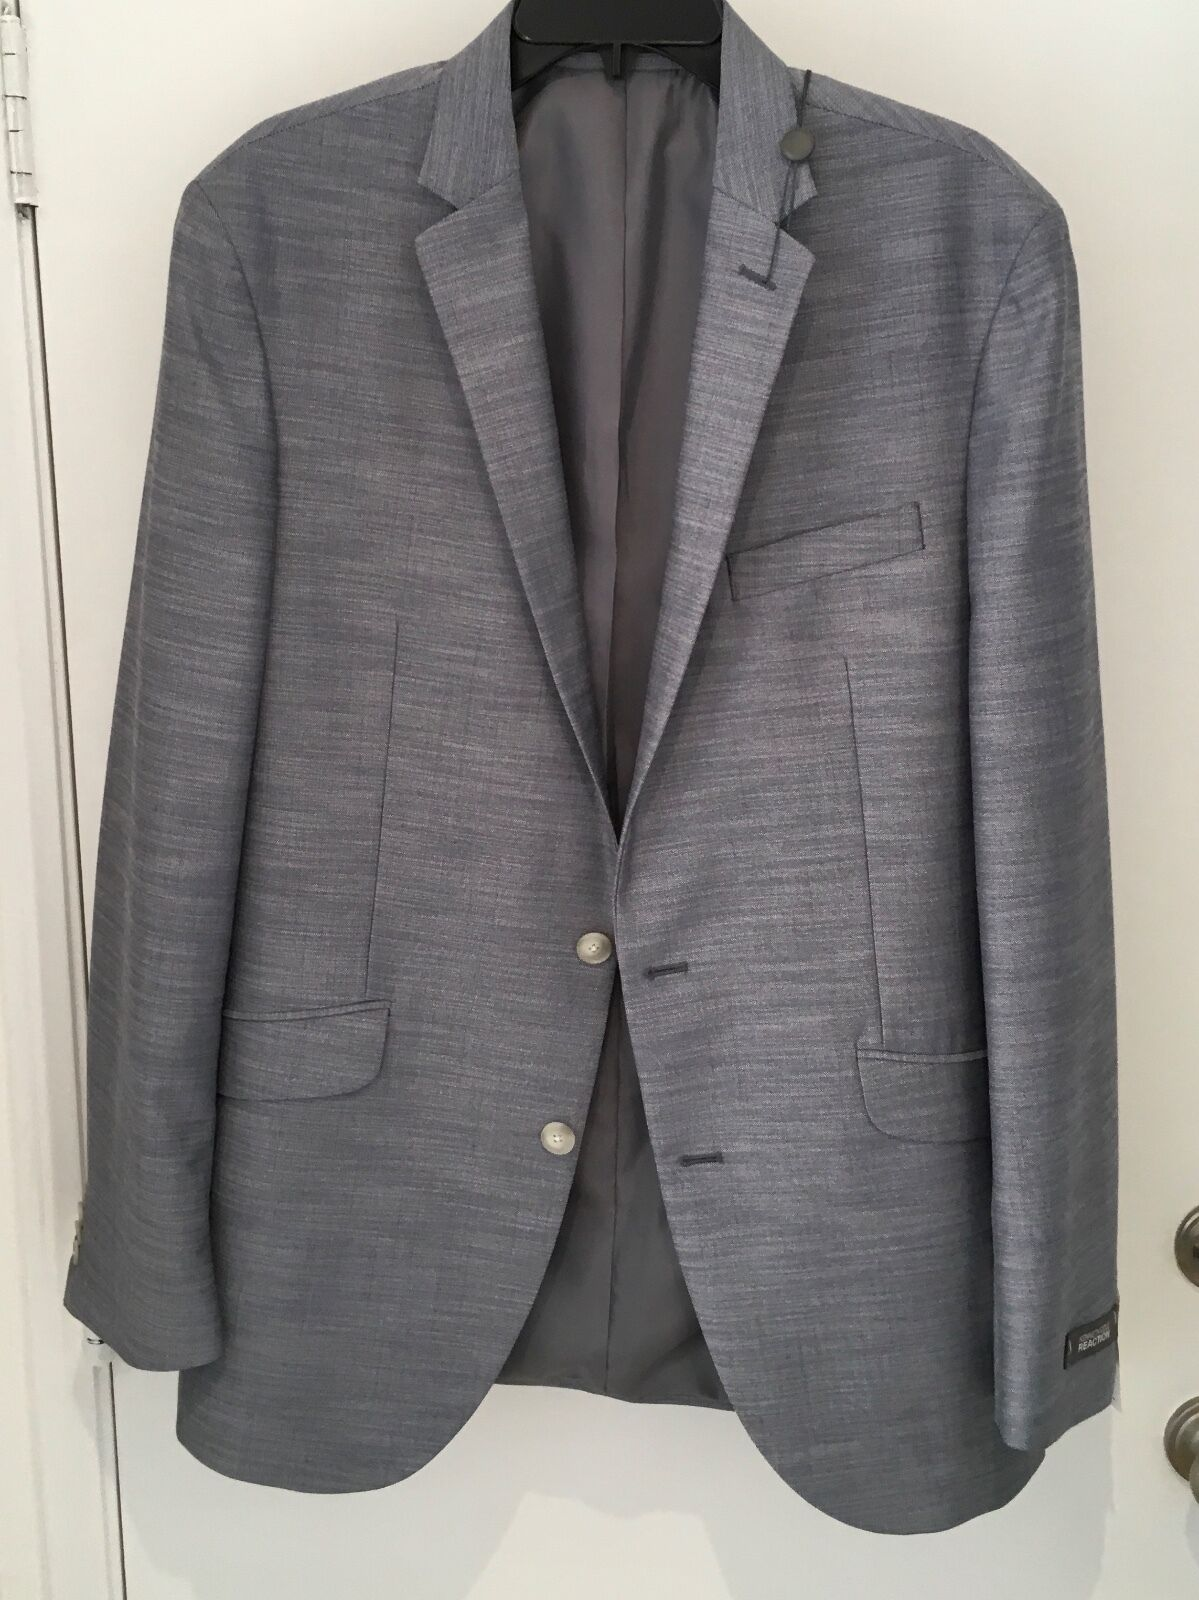 Kenneth Cole Reaction  Collection Charcoal grau  Blazer 42L NWT